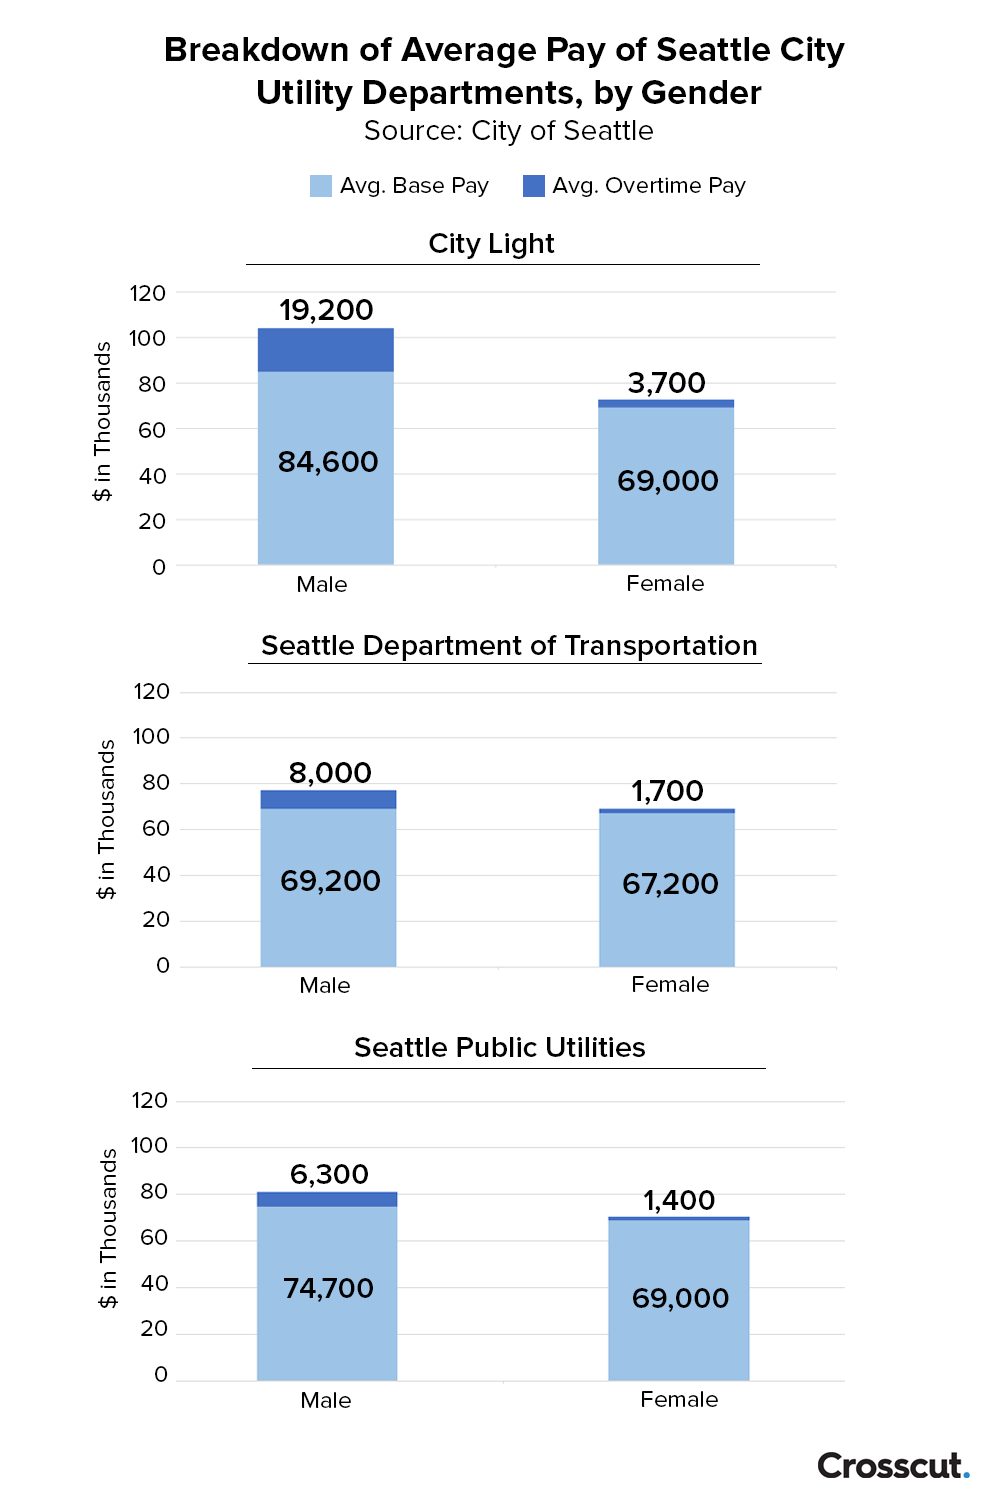 Breakdown of average pay of Seattle City Utility Departments, by gender